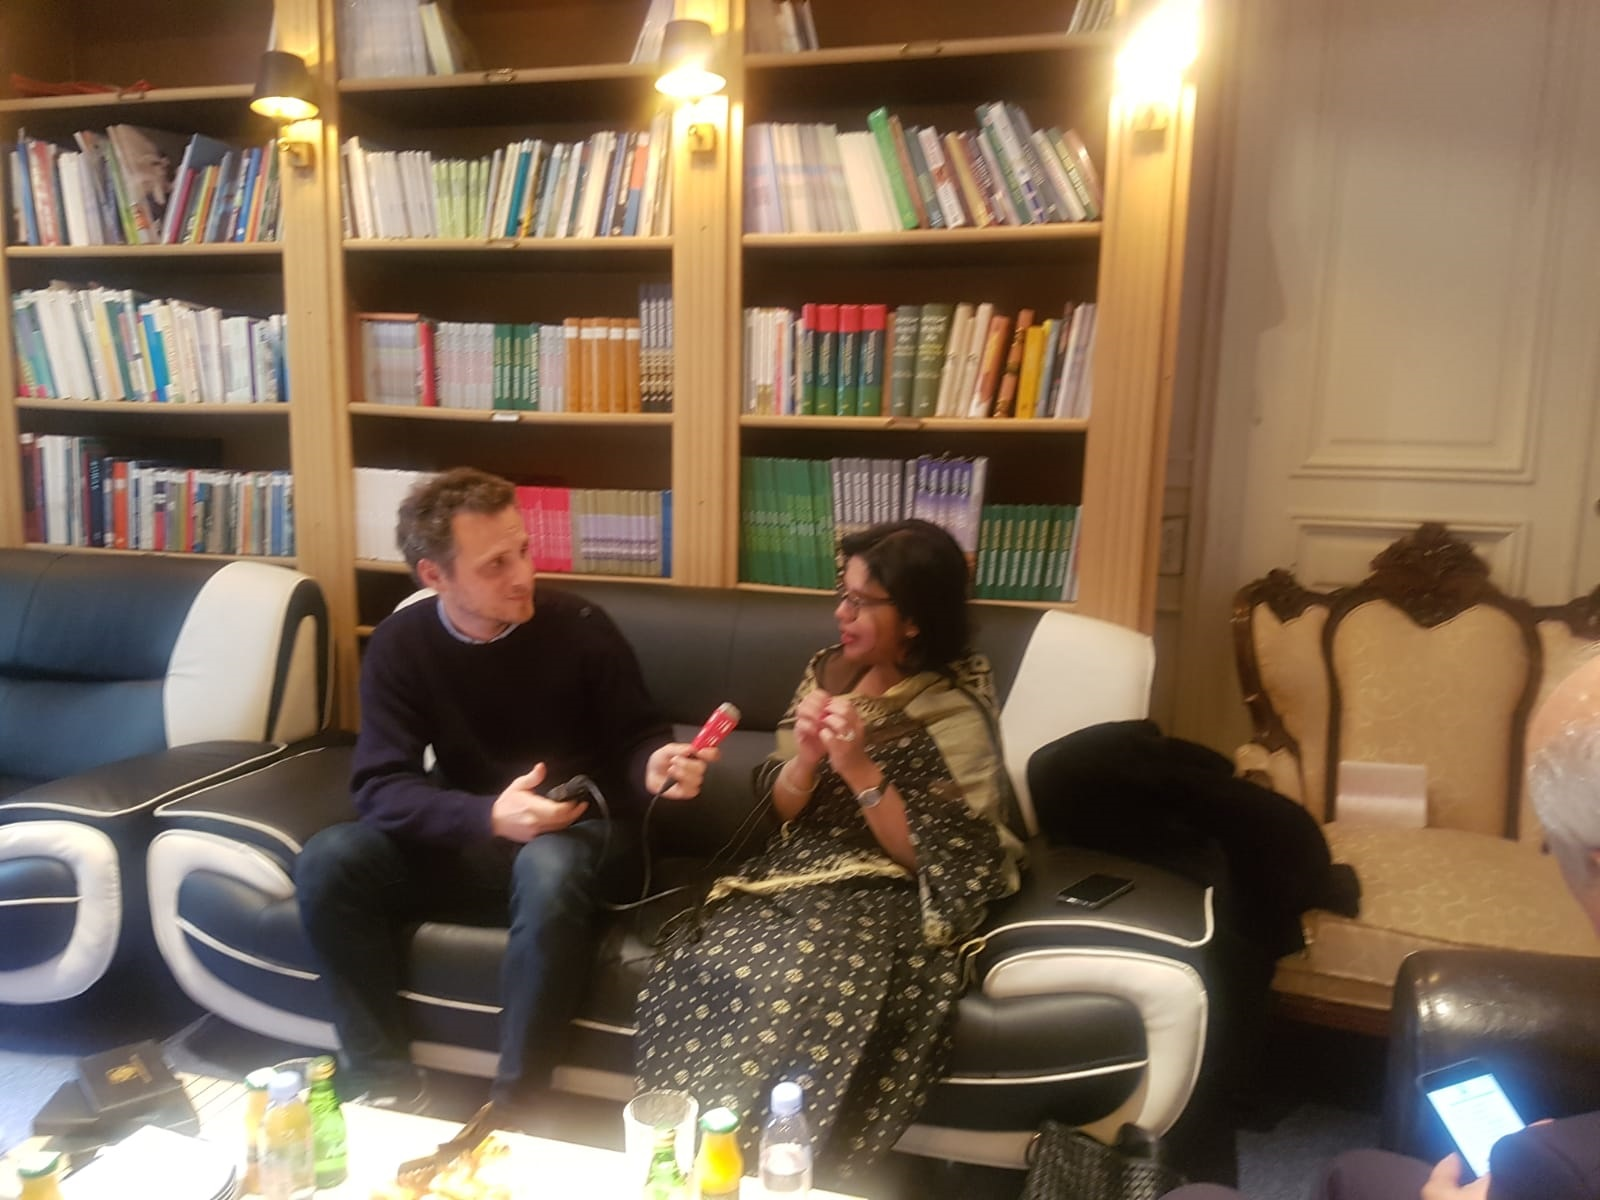 BGMEA President Dr. Rubana Huq in an interview with French media